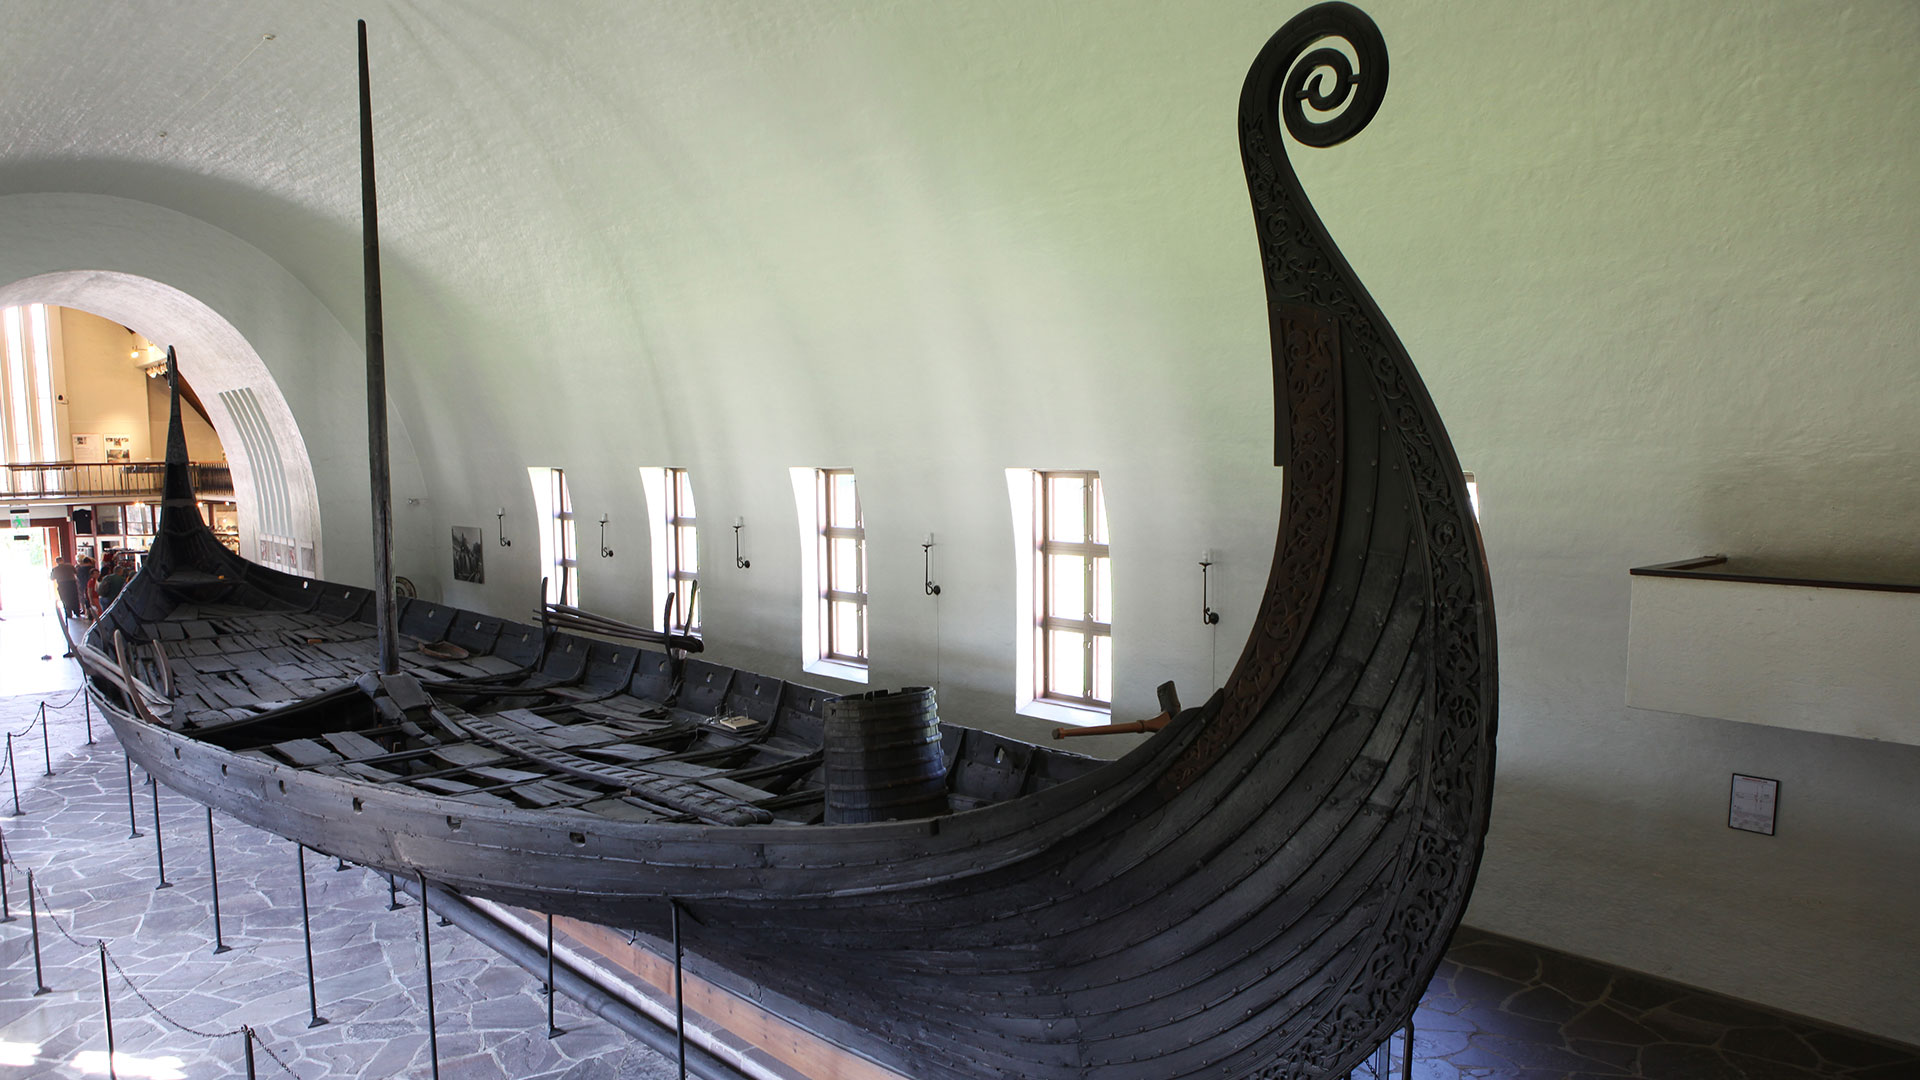 Viking Museum in Oslo, Norway